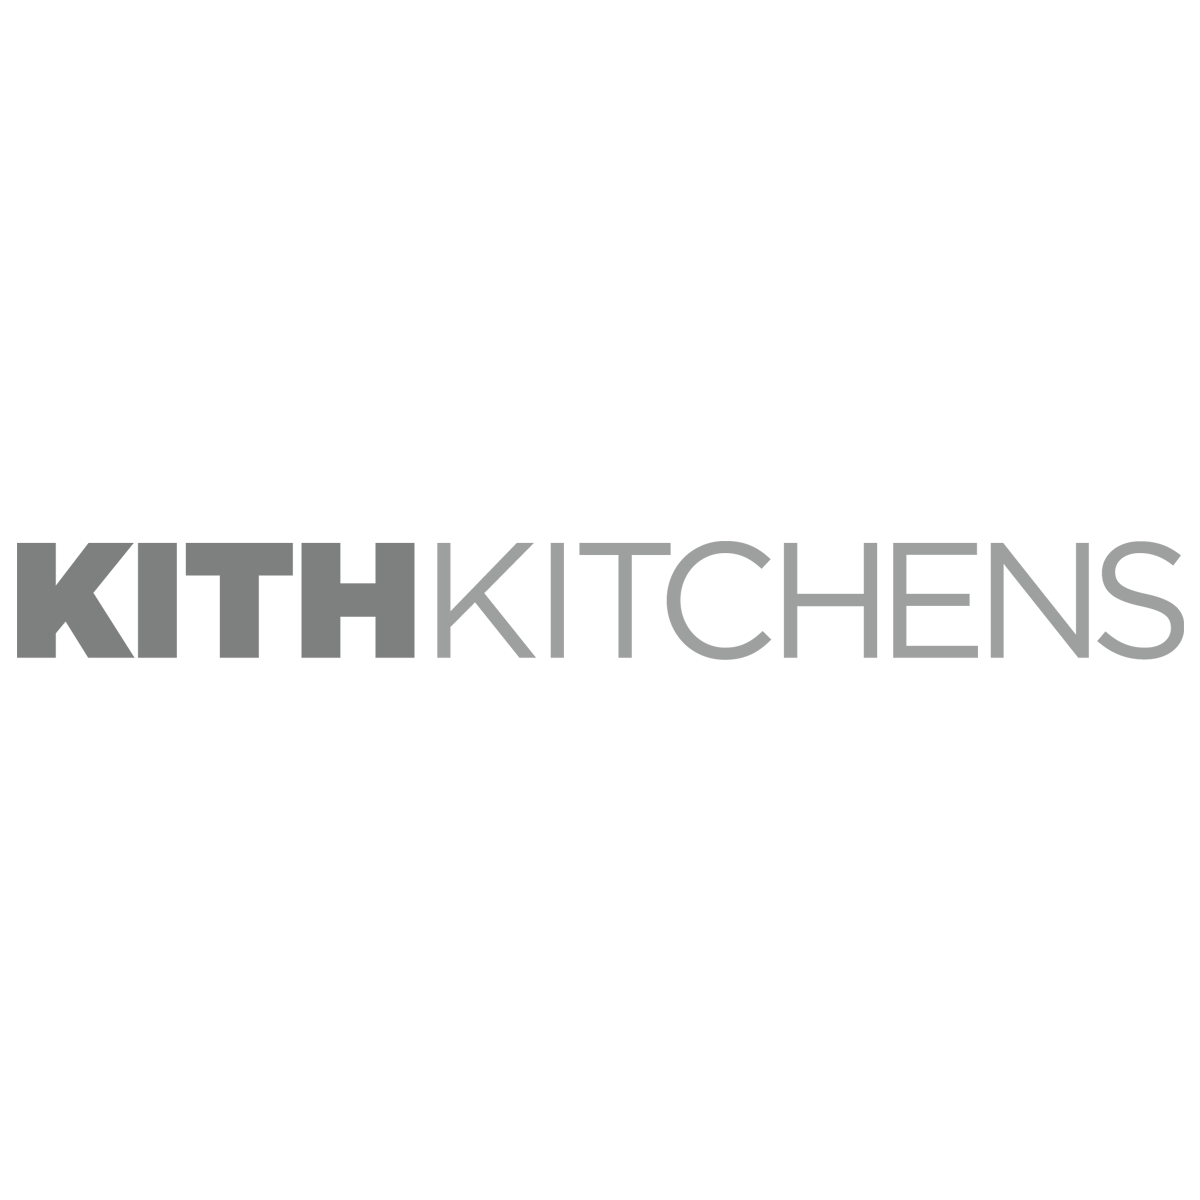 Kith kitchens cabinetry logo